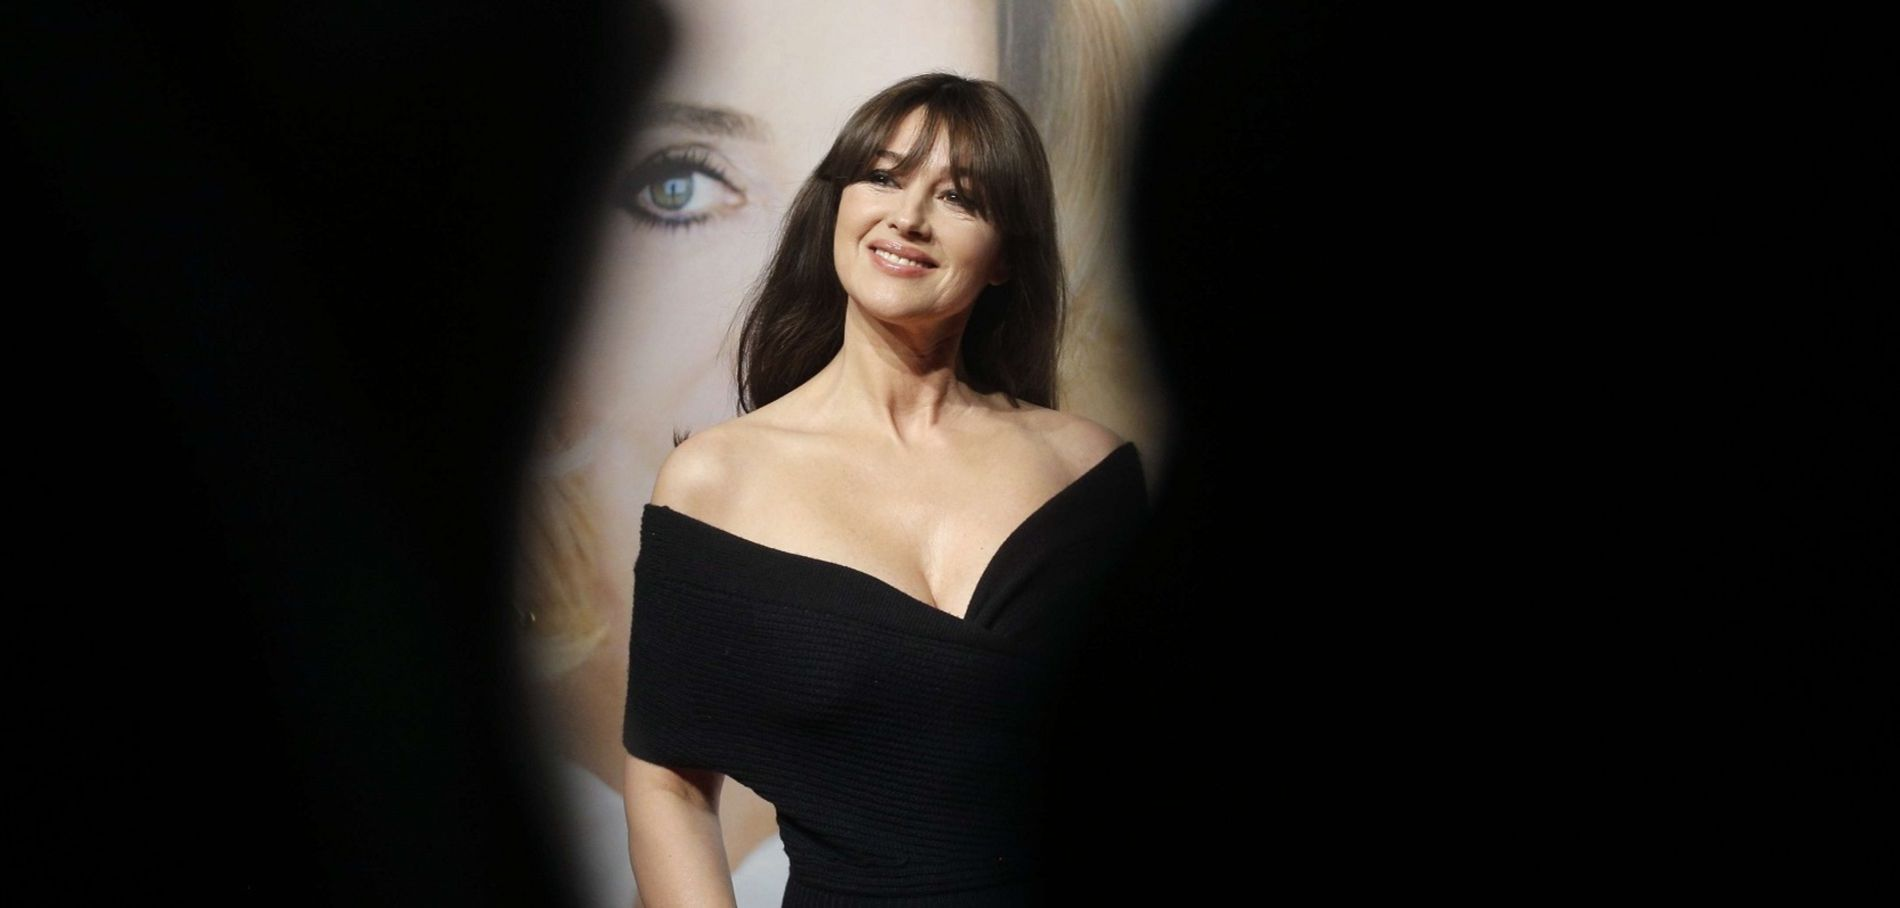 Photo of Cannes 2017: Monica Bellucci to be the Mistress of Ceremonies